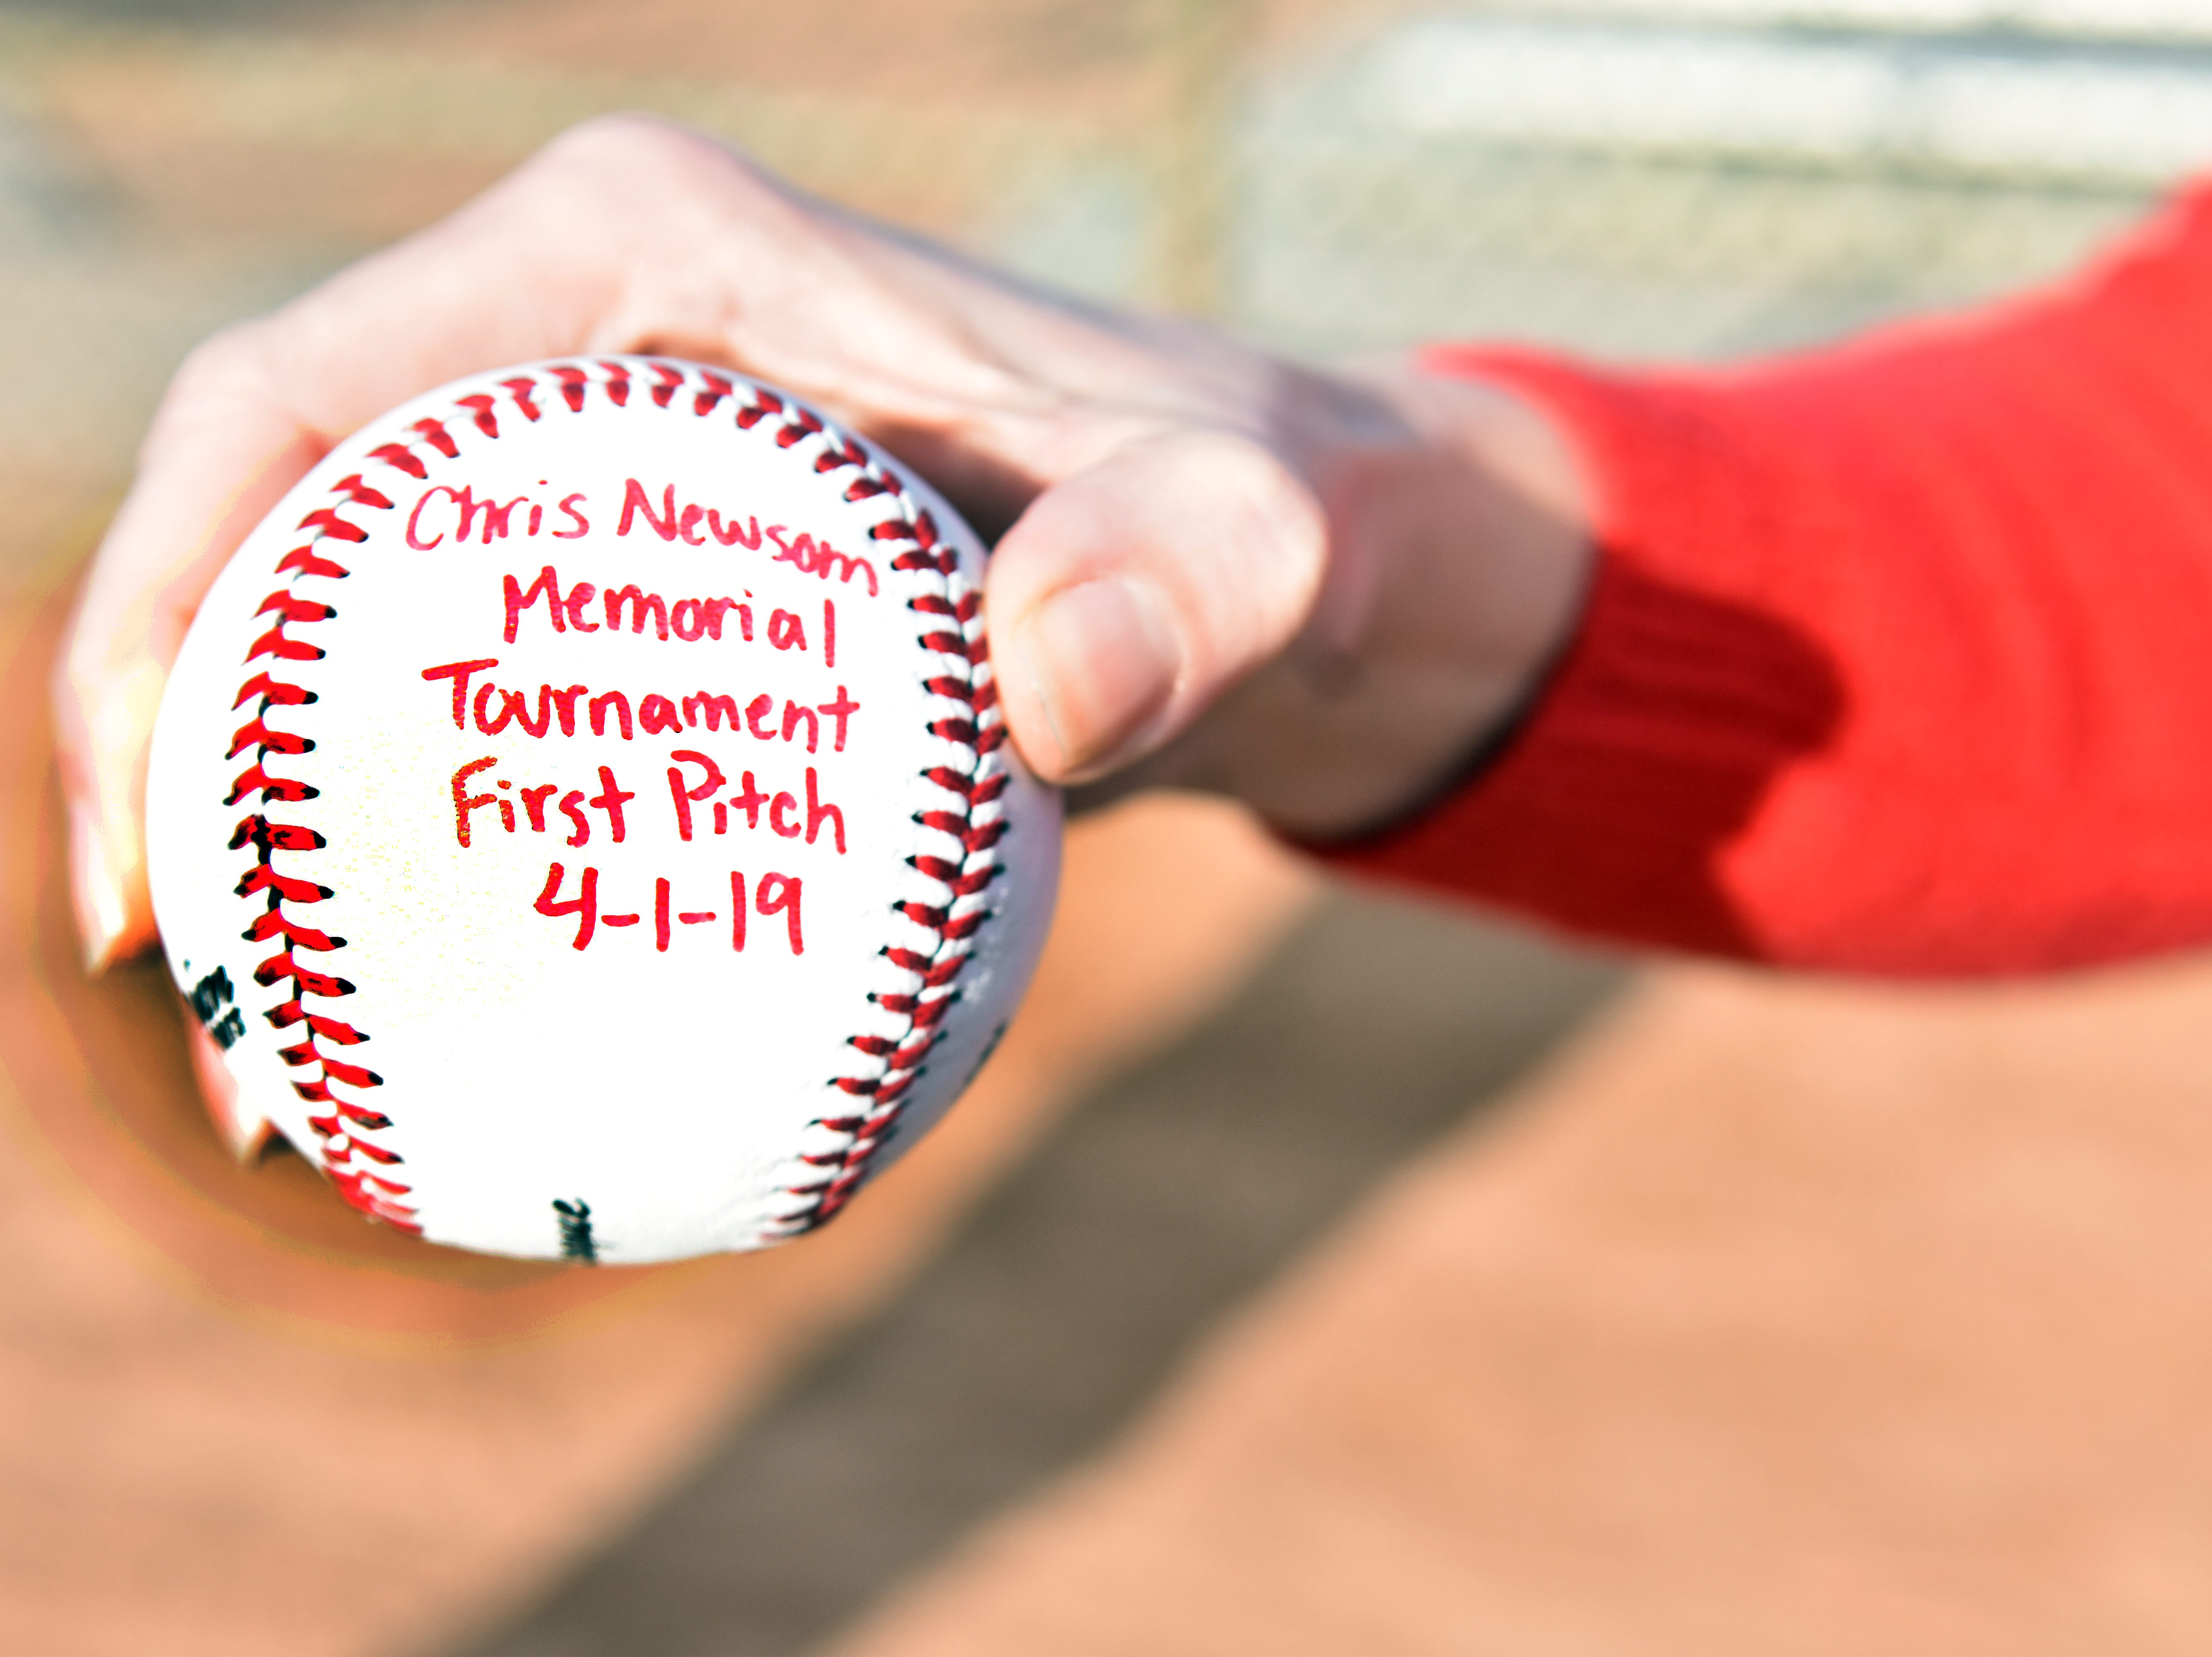 Scholarship recipients at the Chris Newsom Memorial Tournament receive an official dated baseball from the event.